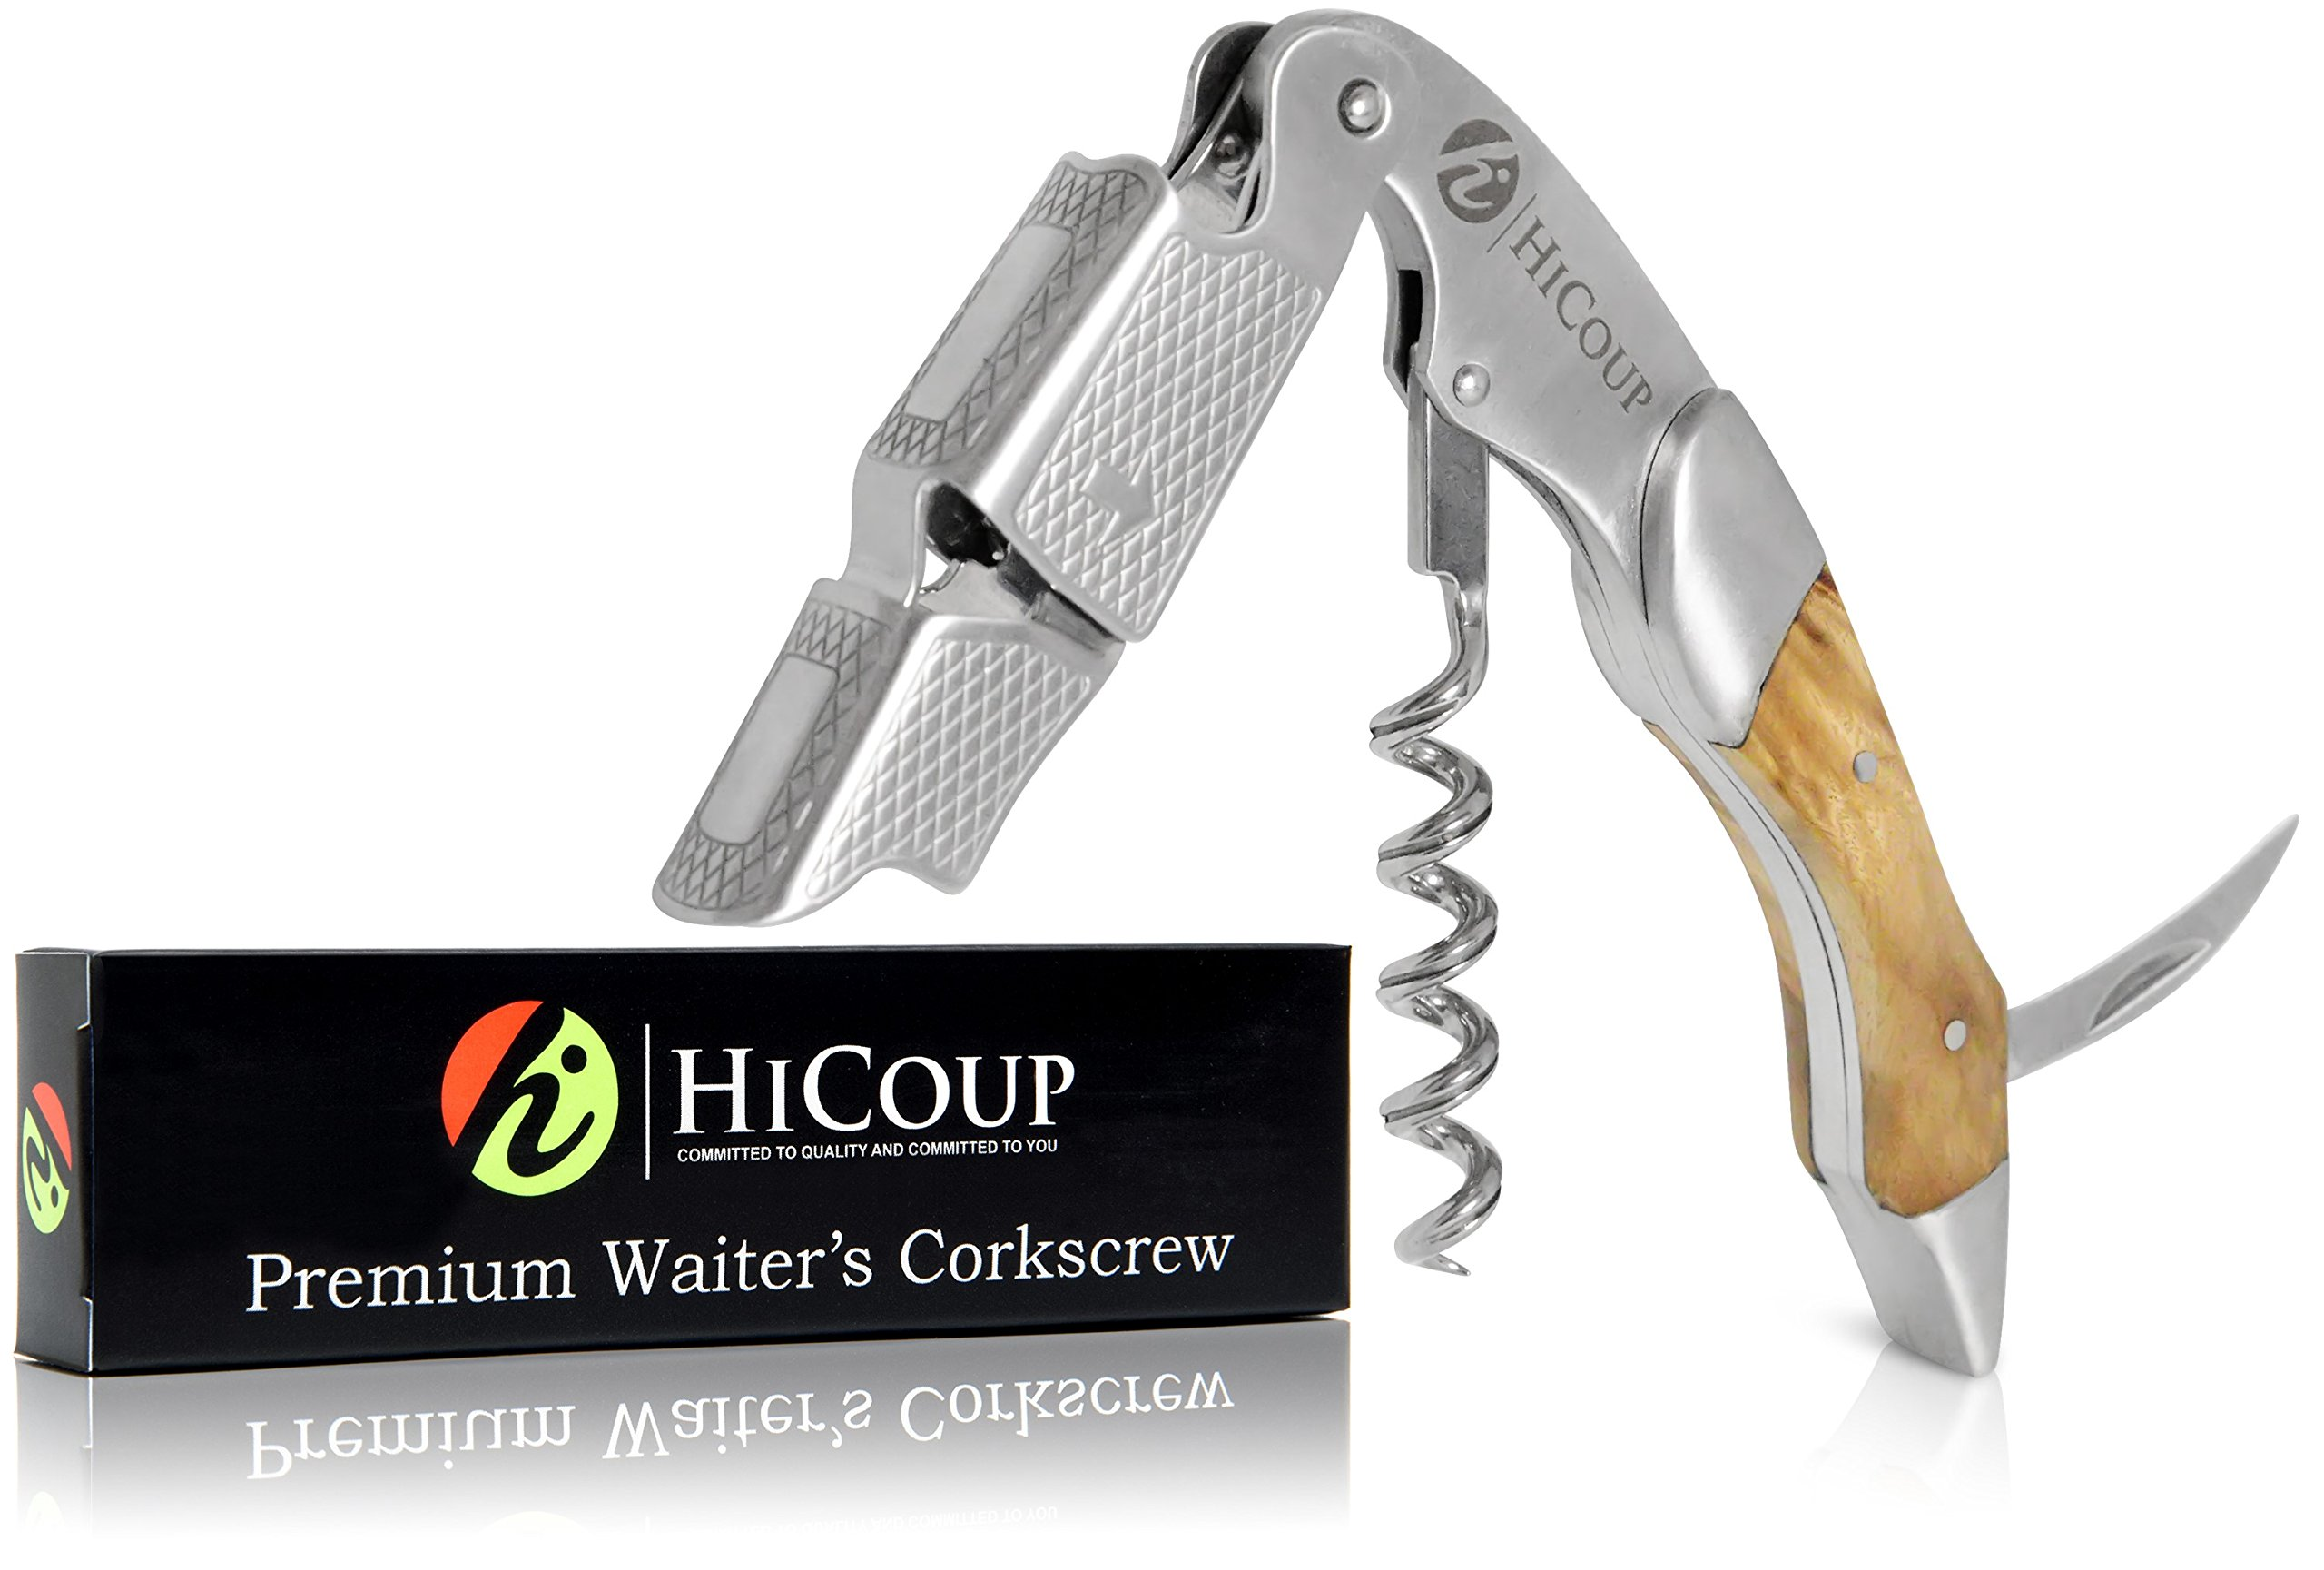 Waiters Corkscrew by HiCoup - Professional Stainless Steel with Bai Ying Wood Inlay All-in-one Corkscrew, Bottle Opener and Foil Cutter, the Favoured Wine Opener of Sommeliers, Waiters and Bartenders